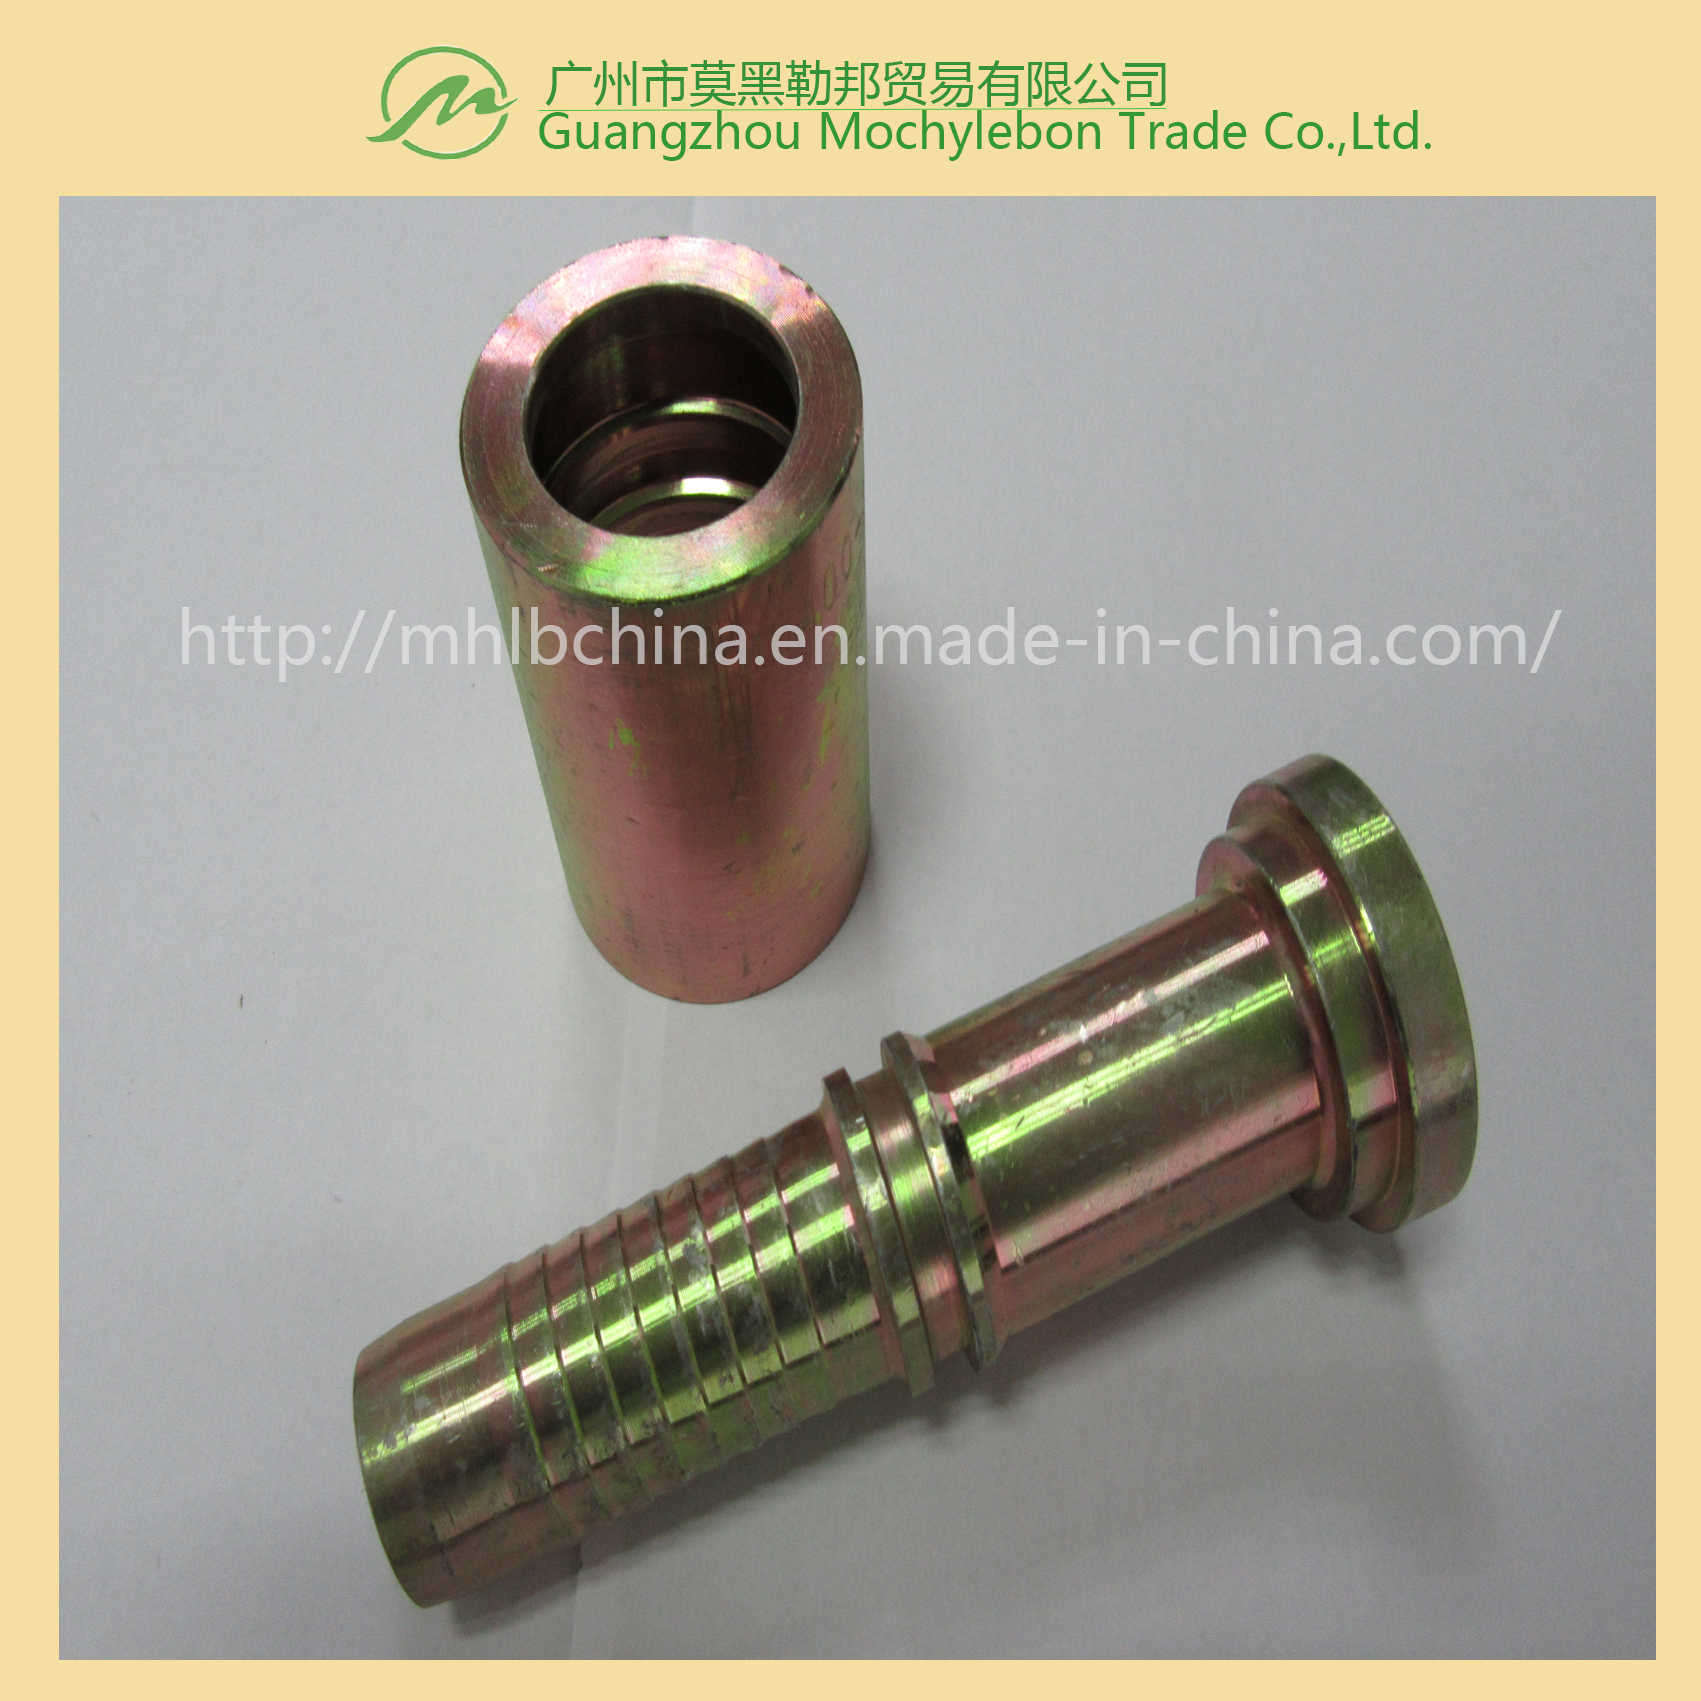 Hydraulic Fittings/Hydraulic Hose Fittings/Ends/Connectors